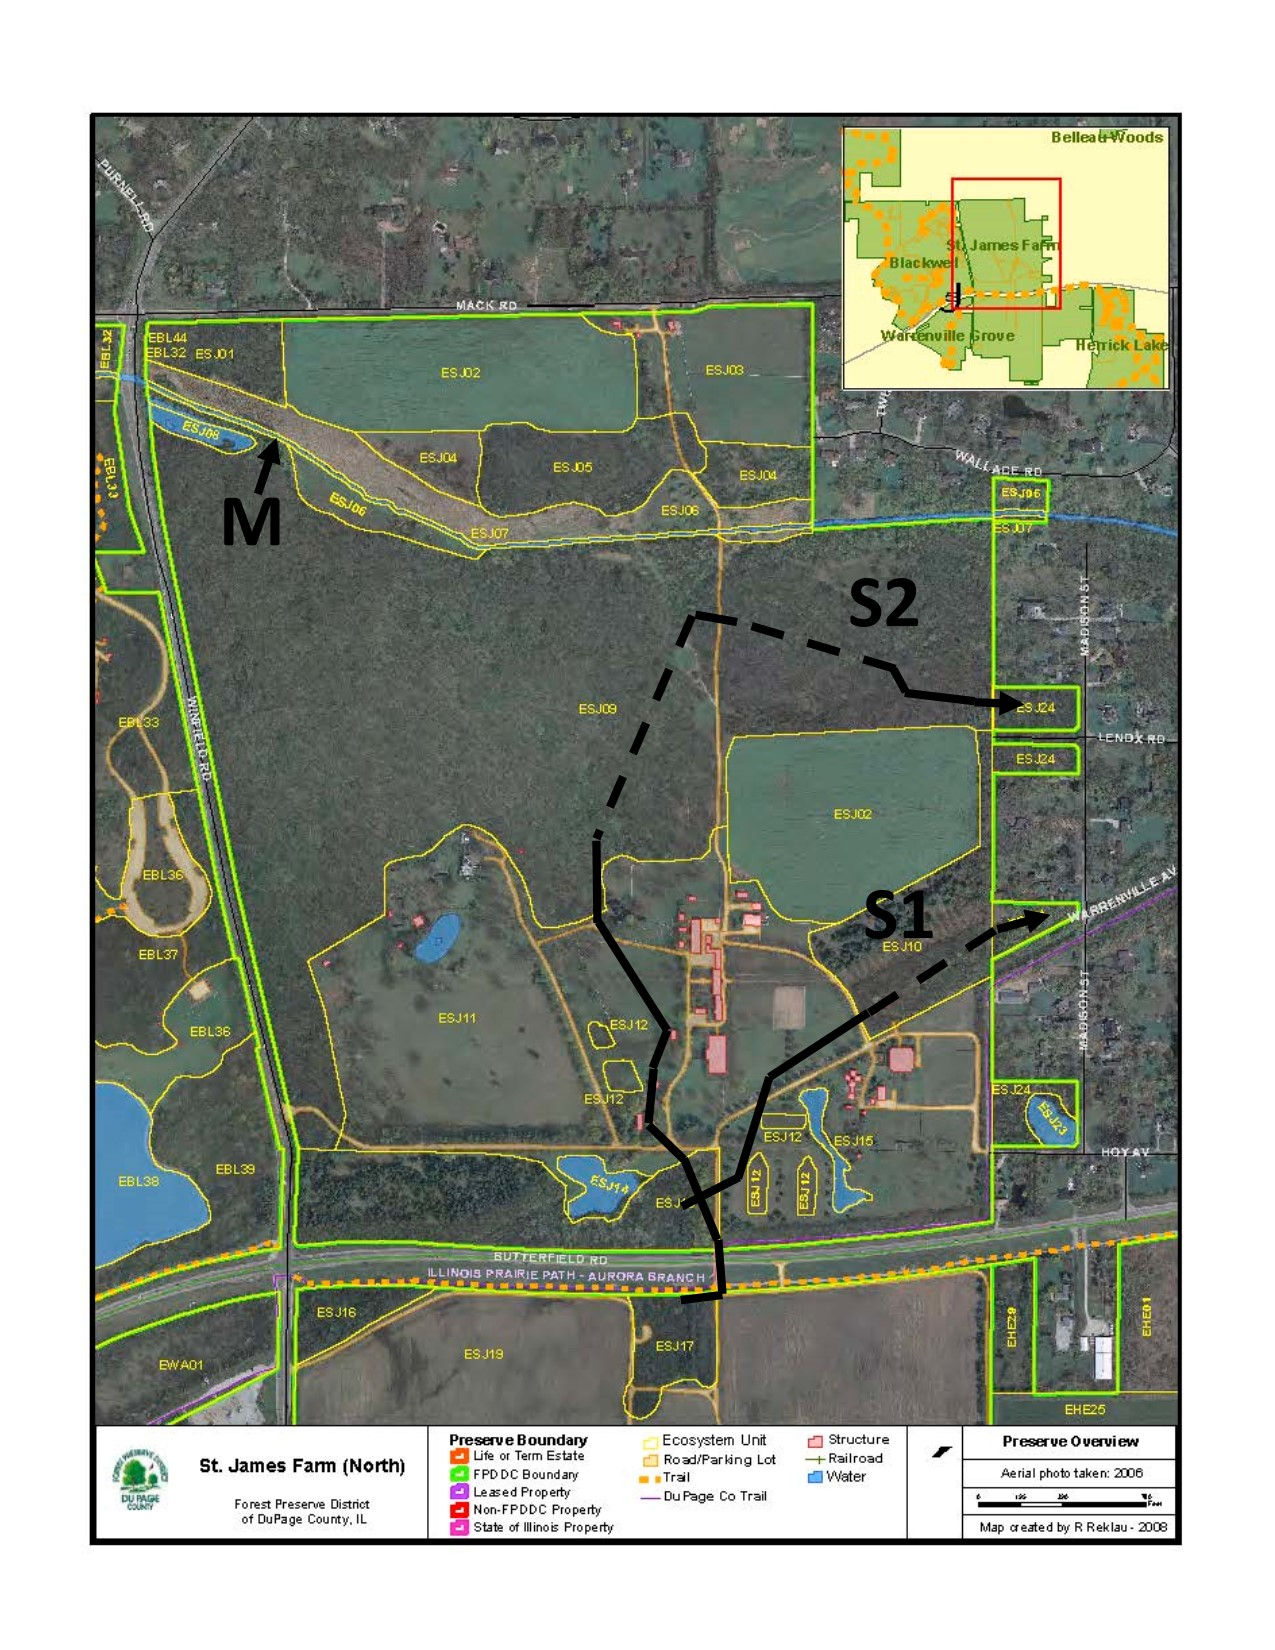 hight resolution of here is the habitat map of northern st james farm m shows where the